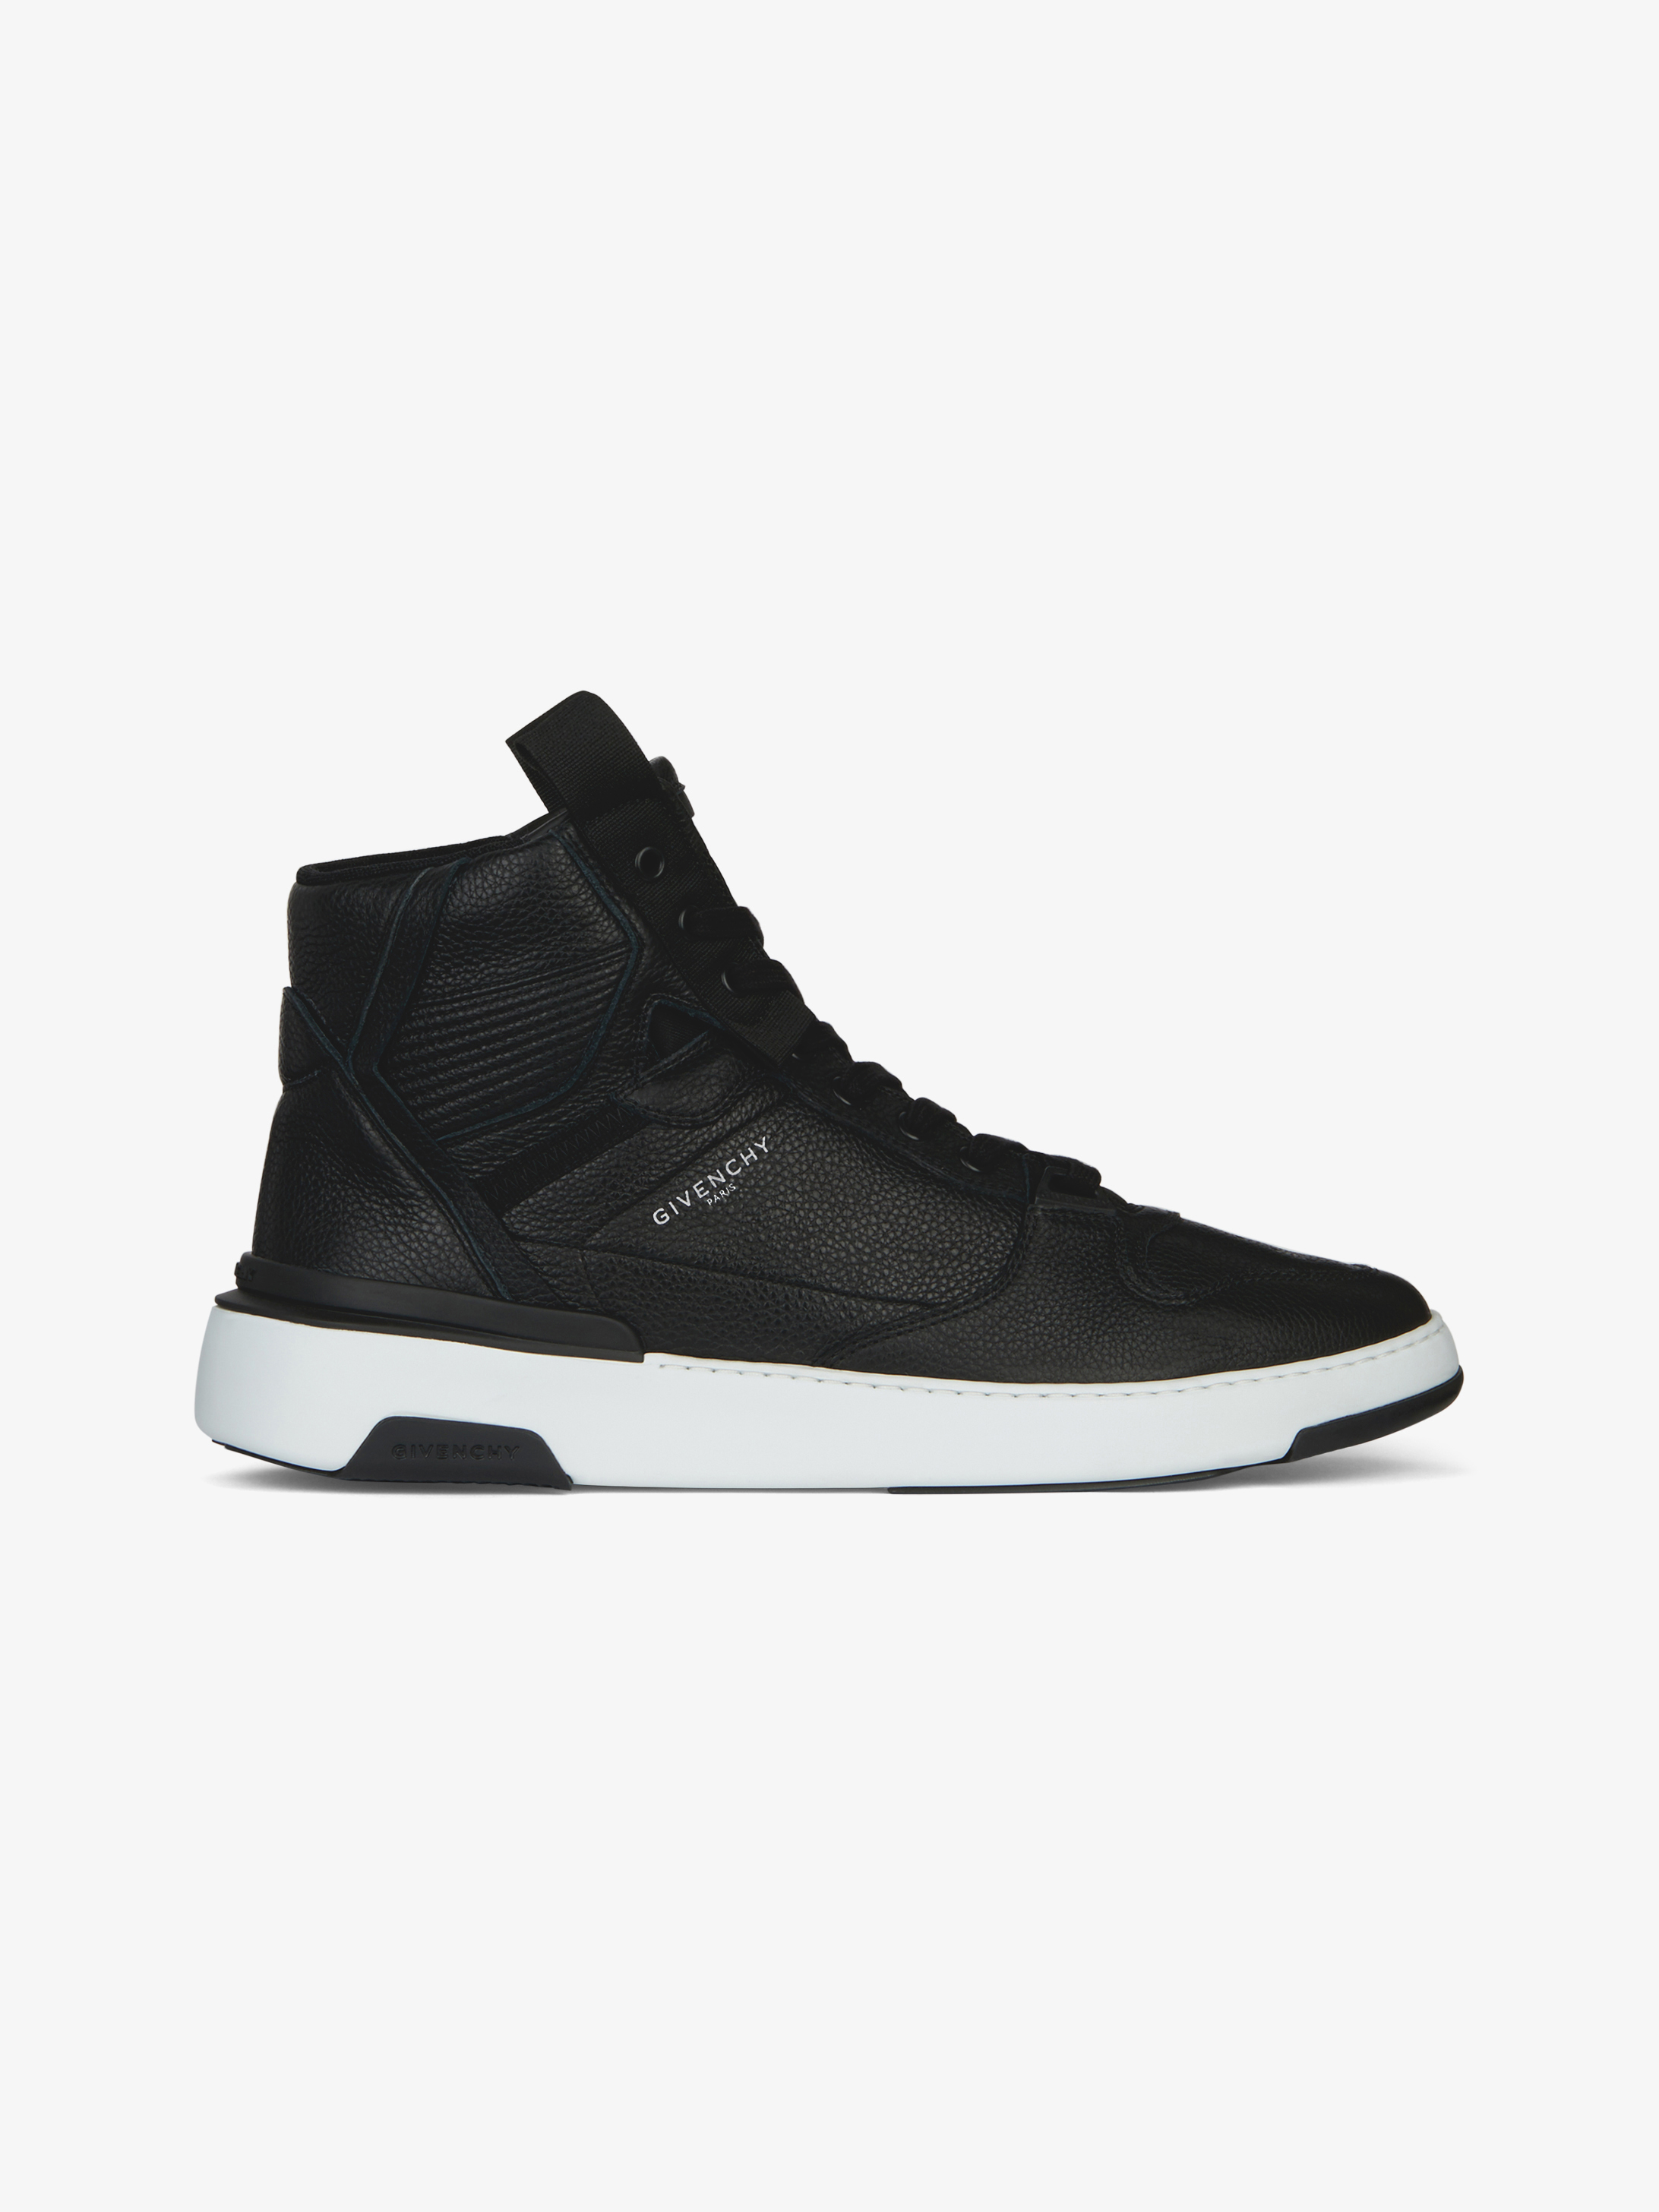 Wing mid two-tone sneakers in leather